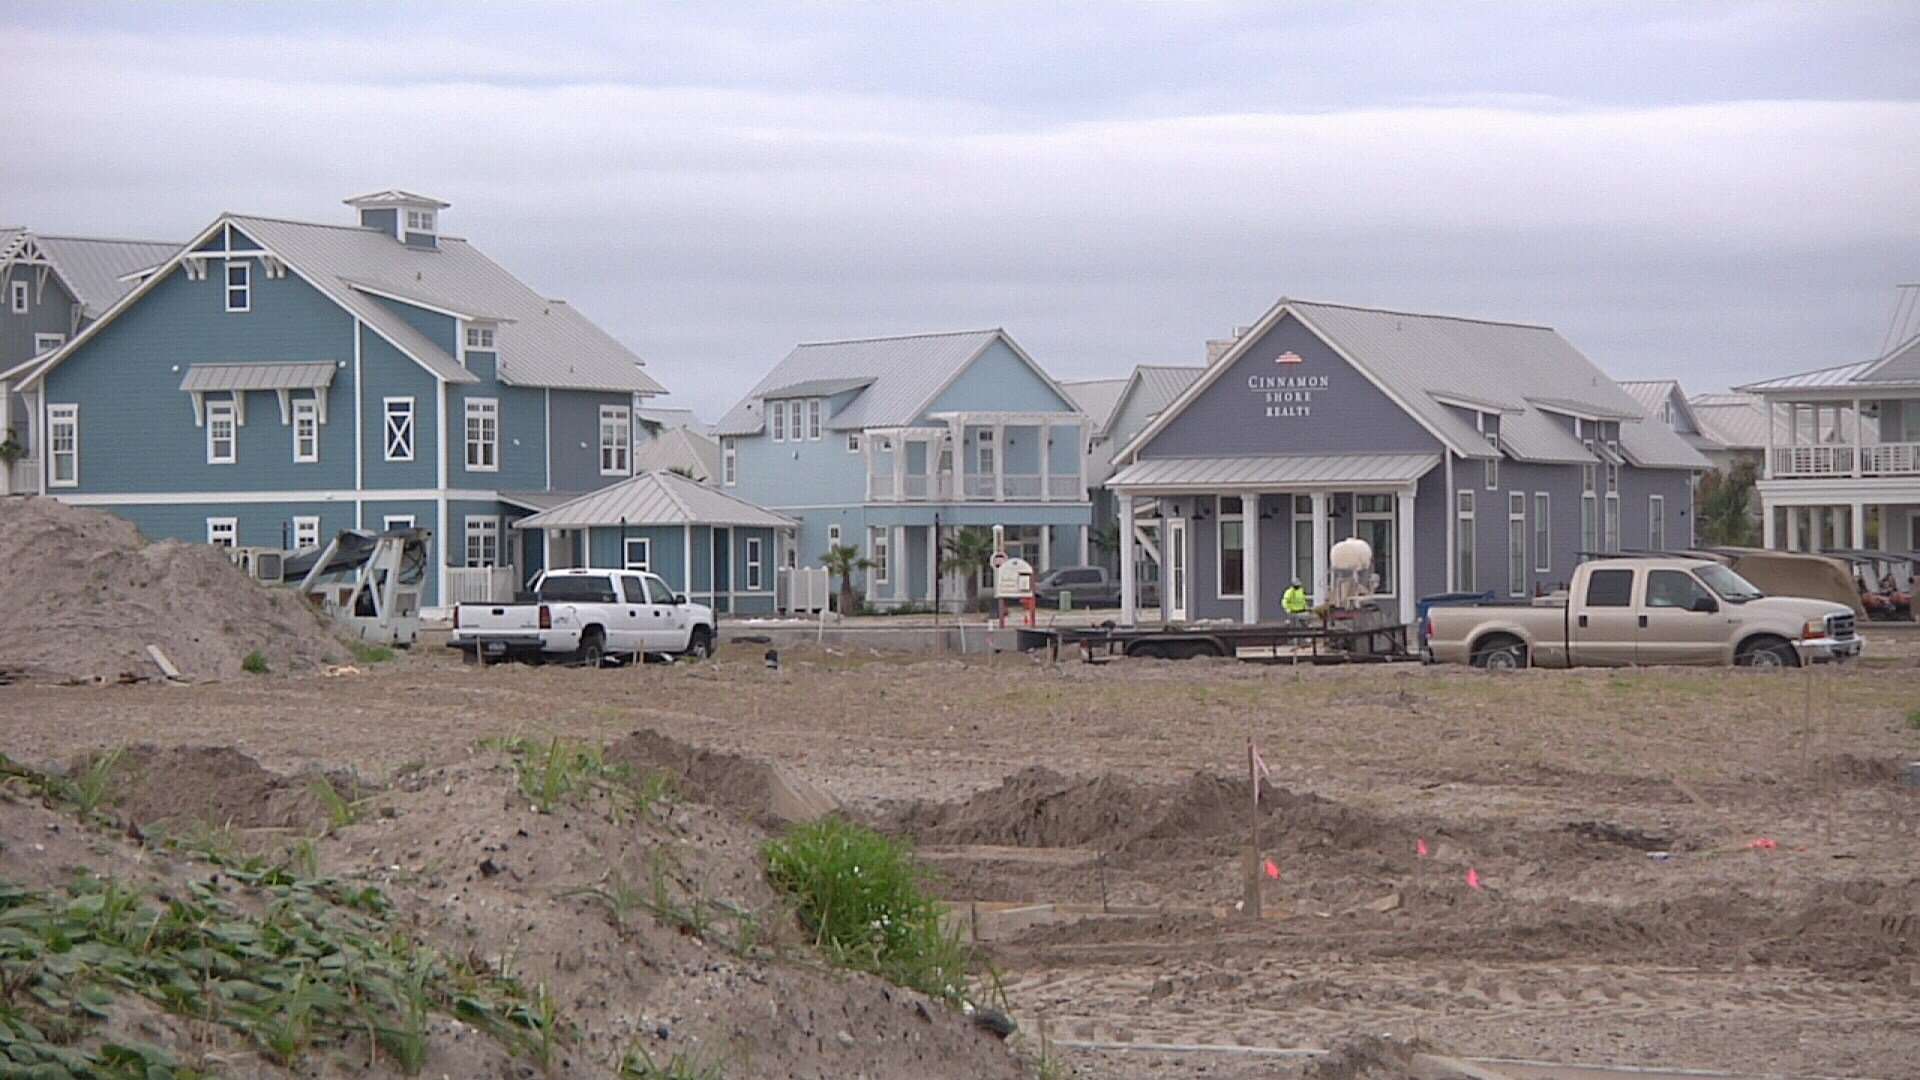 Developers will expand Cinnamon Shore Resort with a new community a mile down the highway.